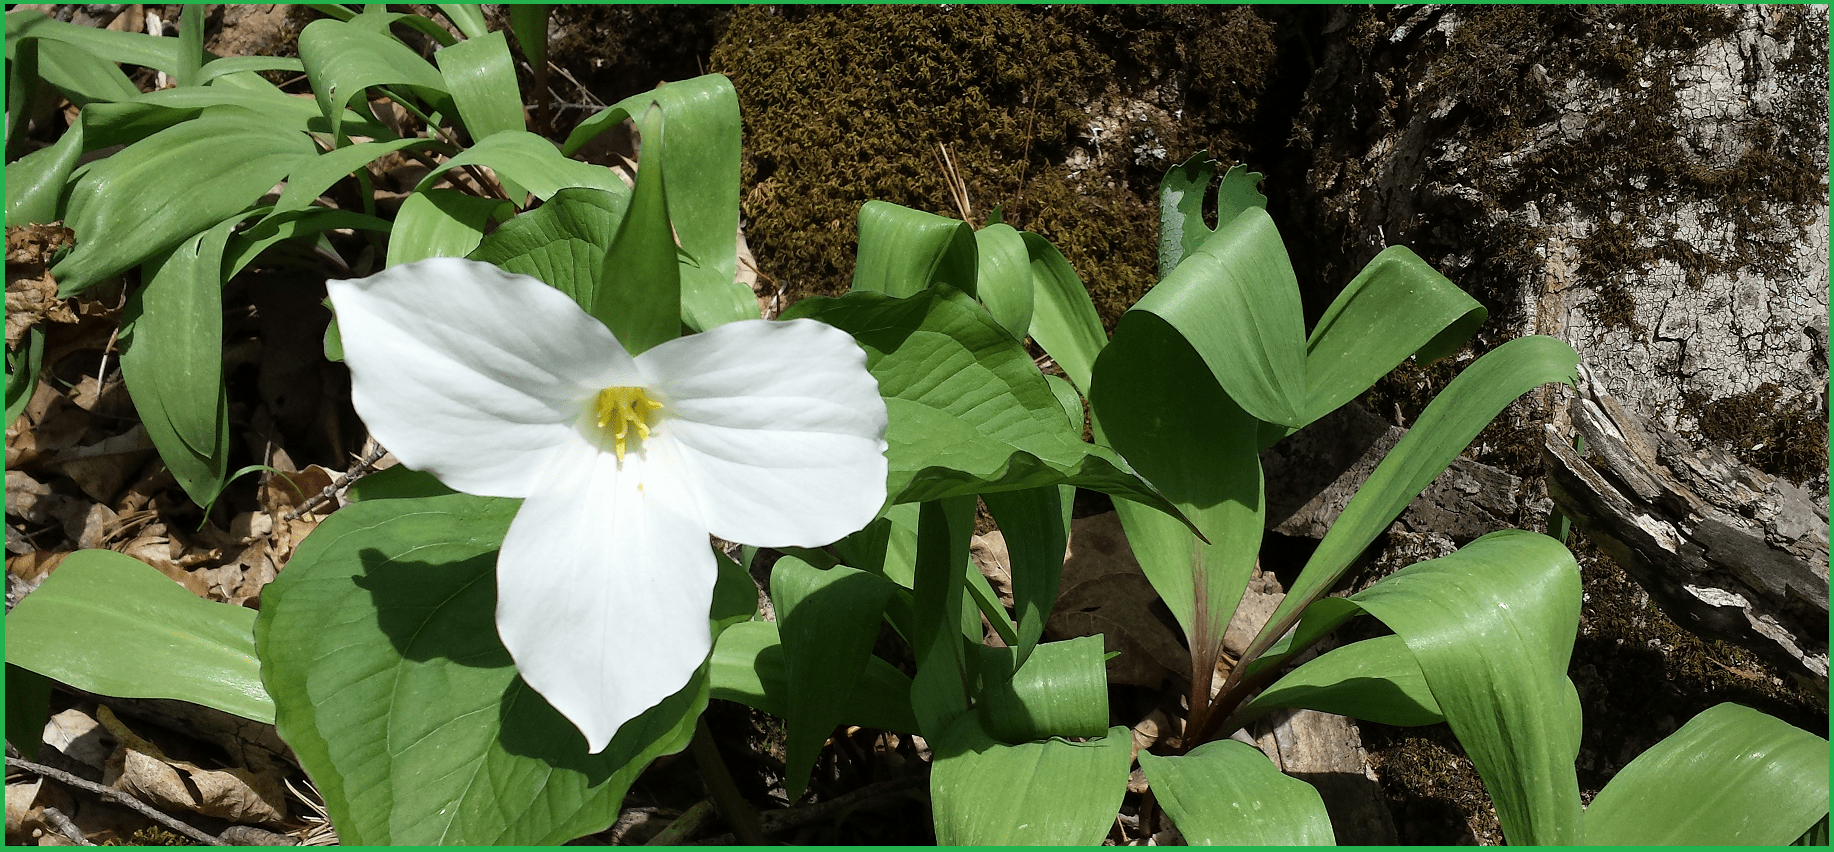 Trillieum at Crawford Lake-Halton region- phoot by Ioana